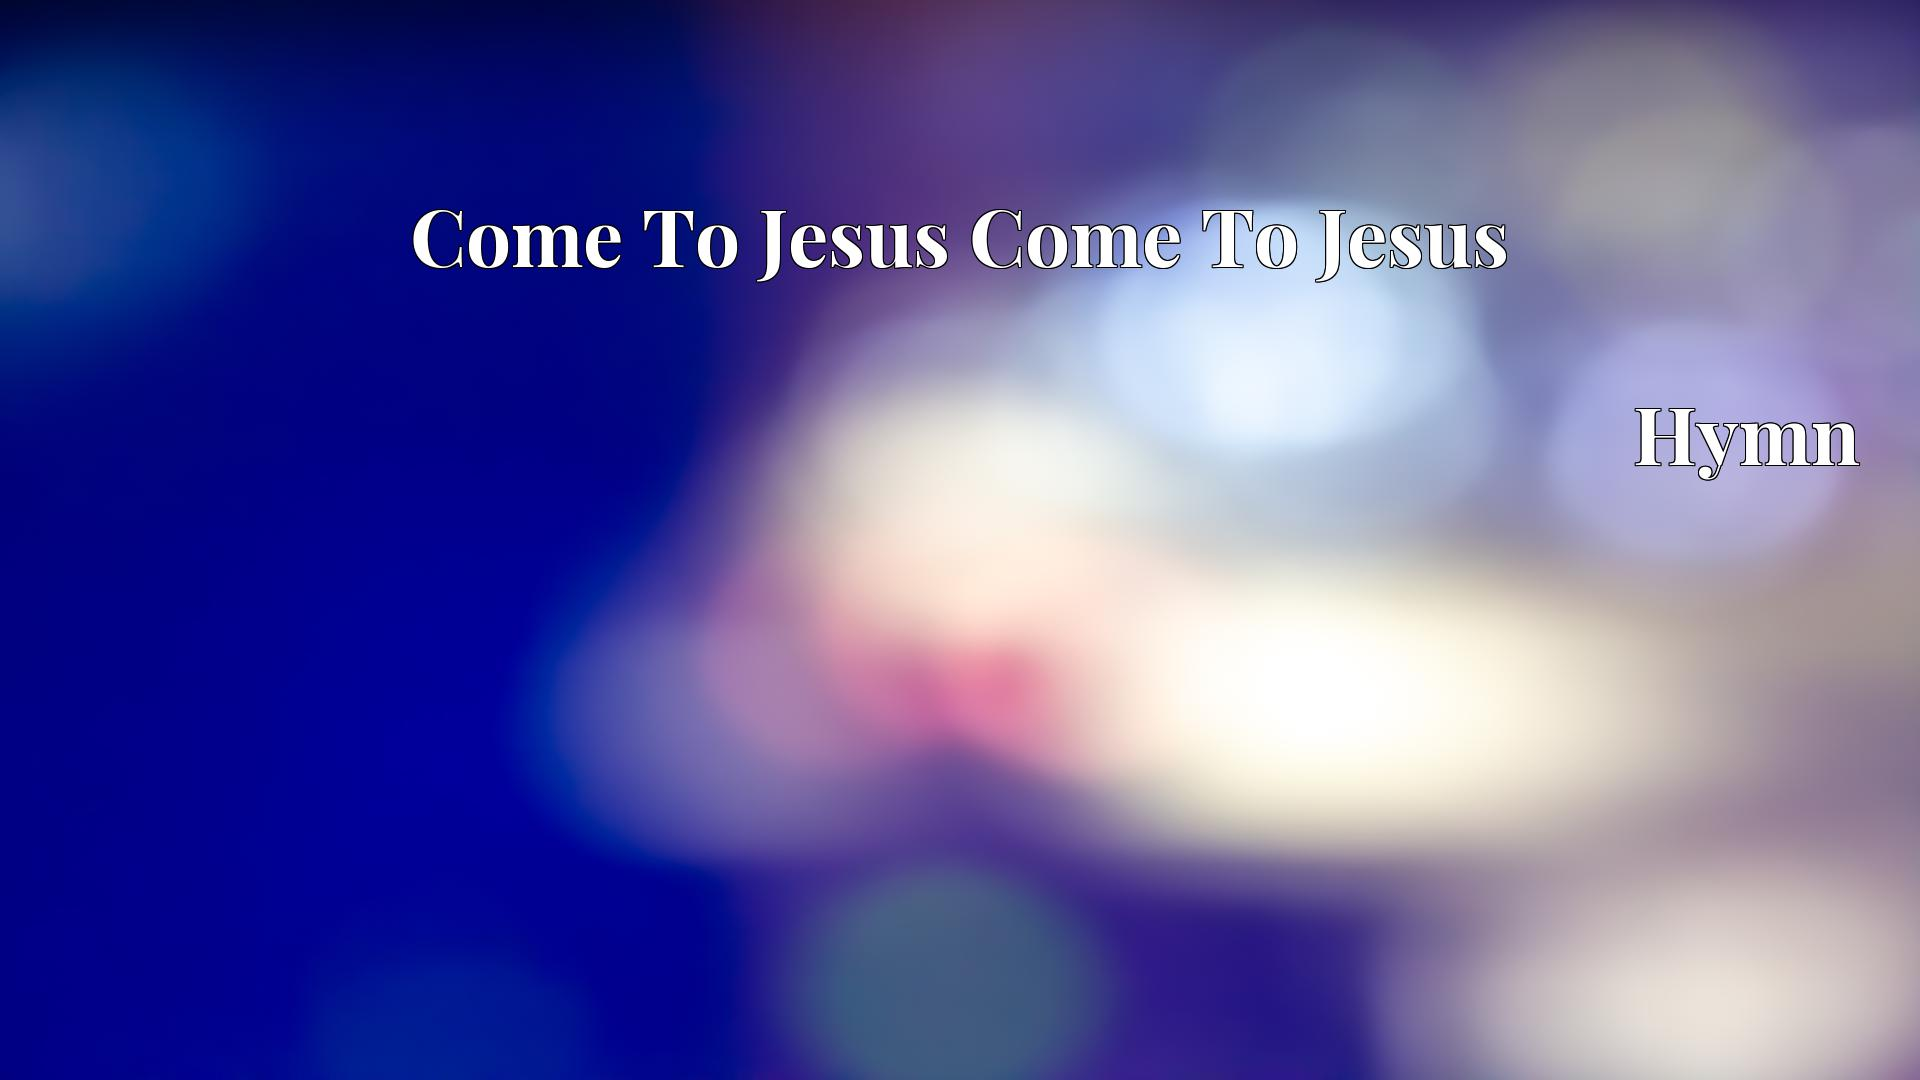 Come To Jesus Come To Jesus - Hymn